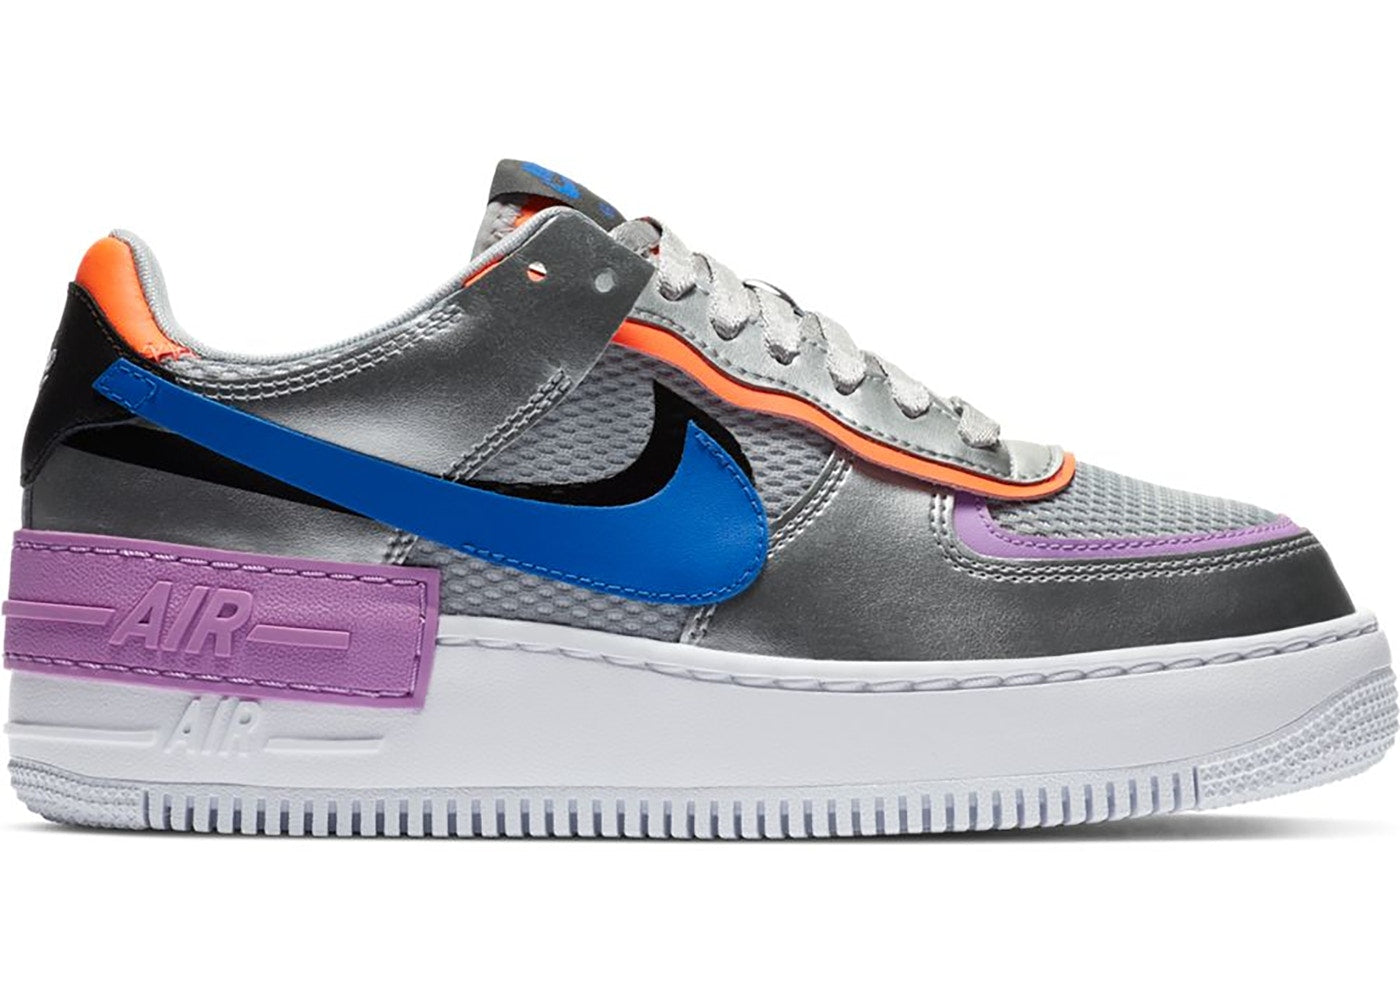 Women's Air Force 1 'Metallic Shadow' xld